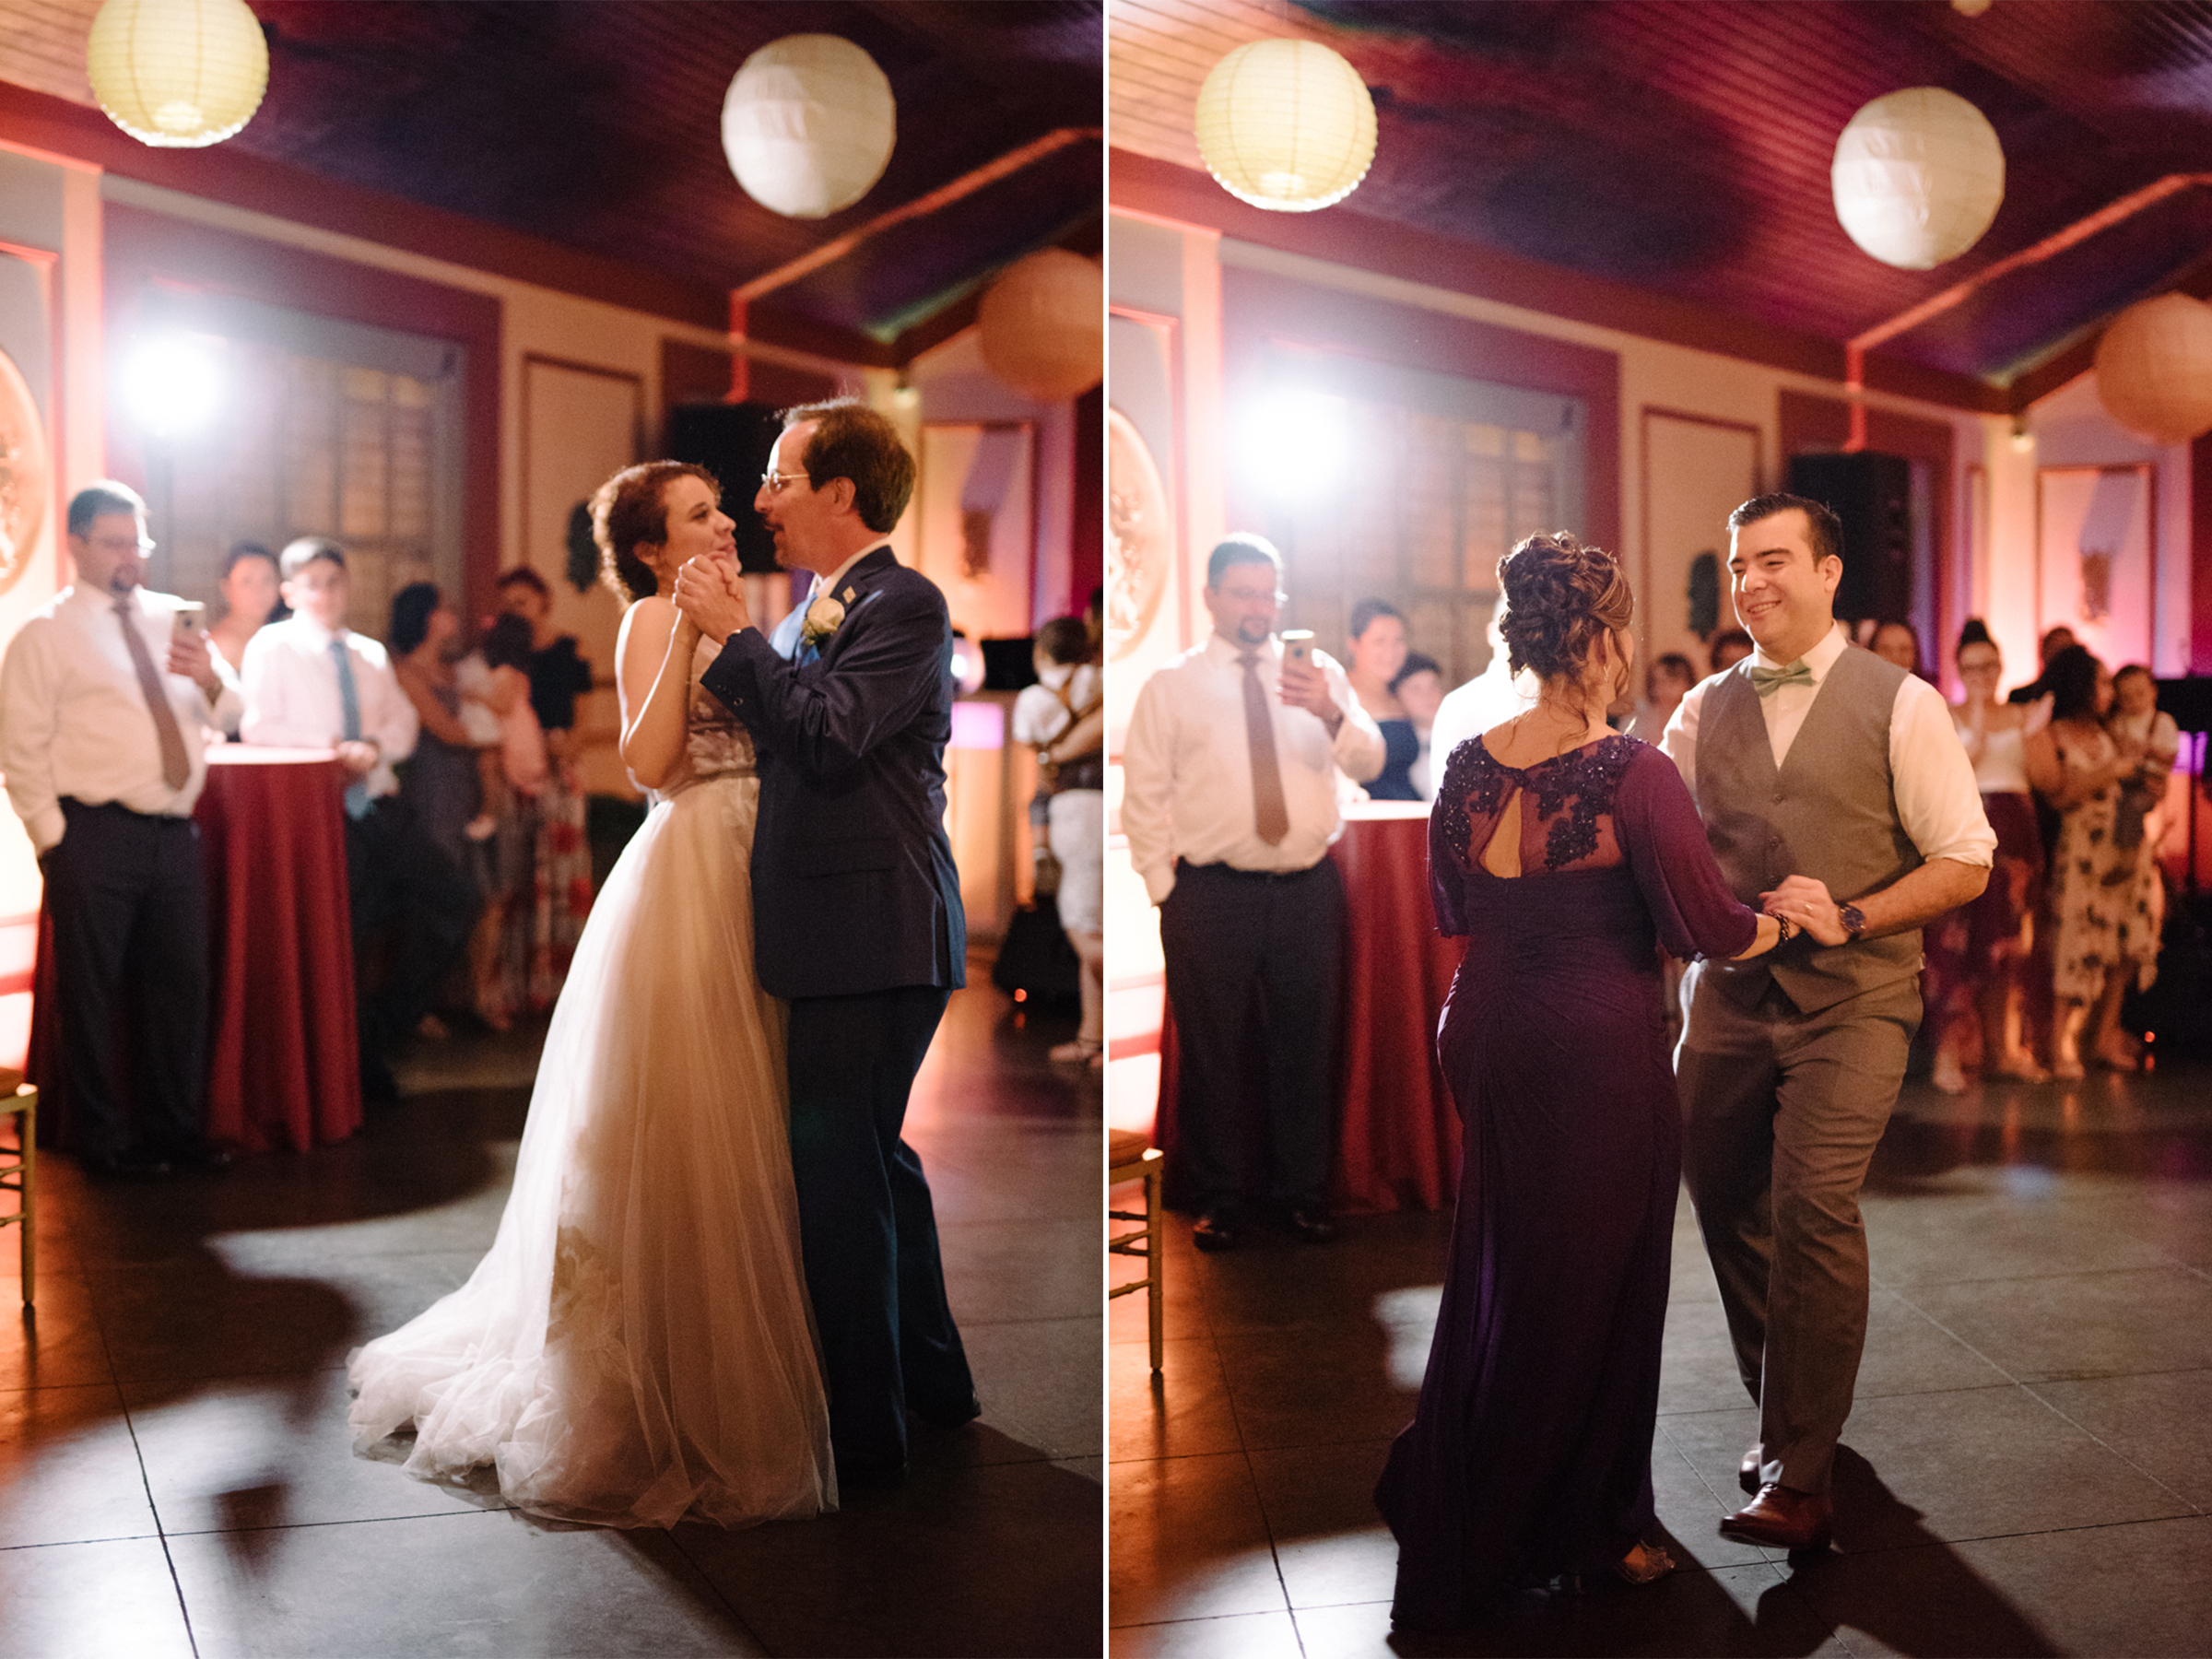 Feast at Round Hill Wedding-Kenny + Melissa- Parent Dances-Hudson Valley New York - Olivia Christina Photo-1.jpg